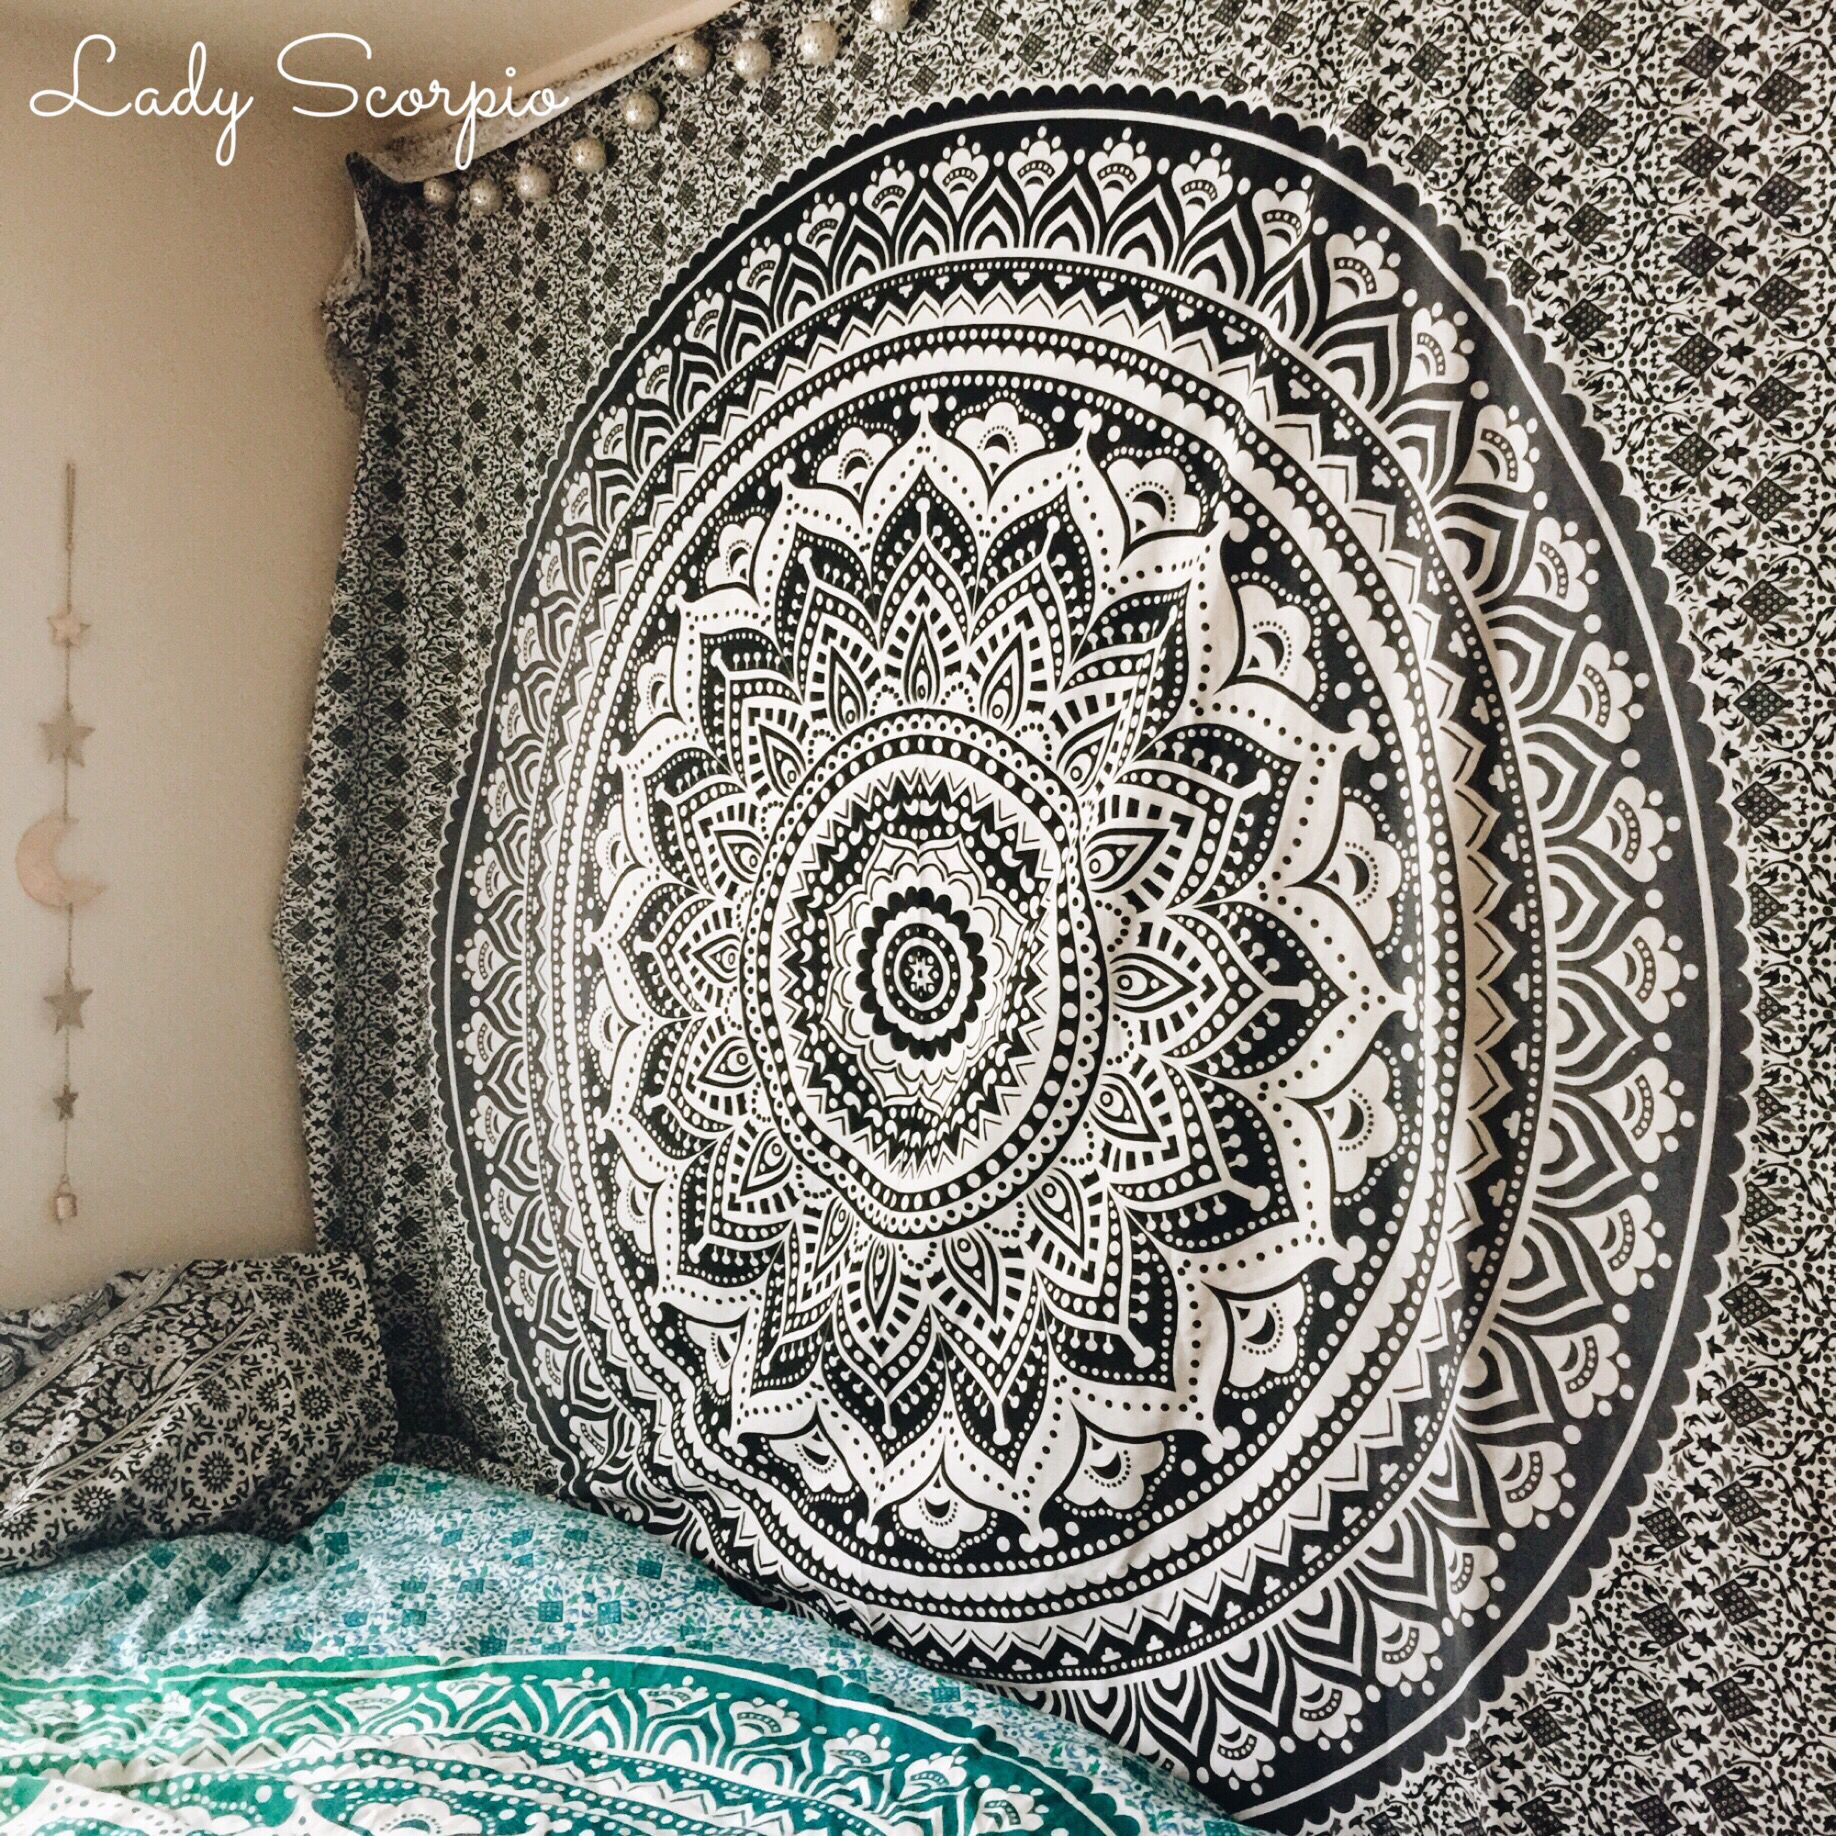 Beautiful black white mandala tapestry by lady scorpio for The tapestry